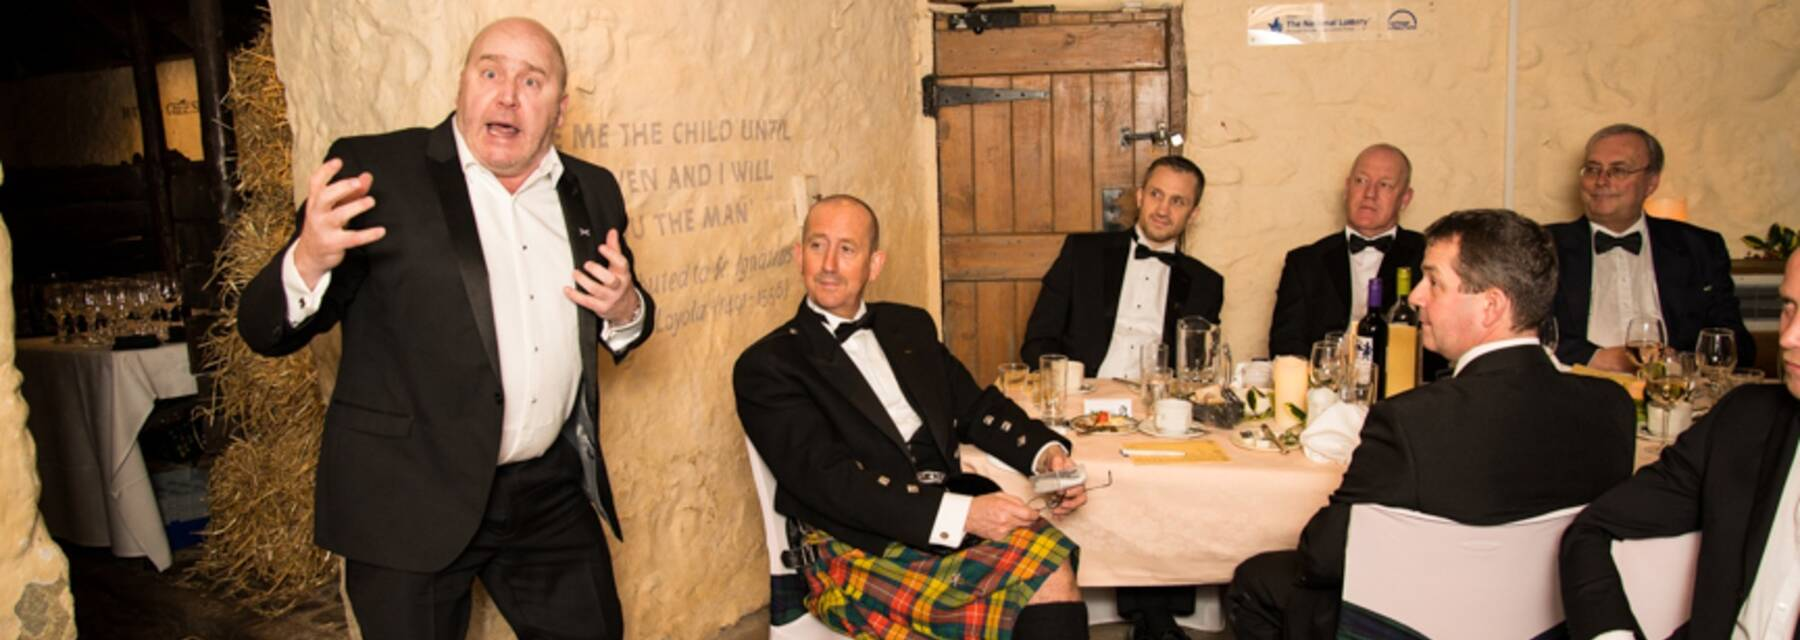 A group of people celebrating Burns Night